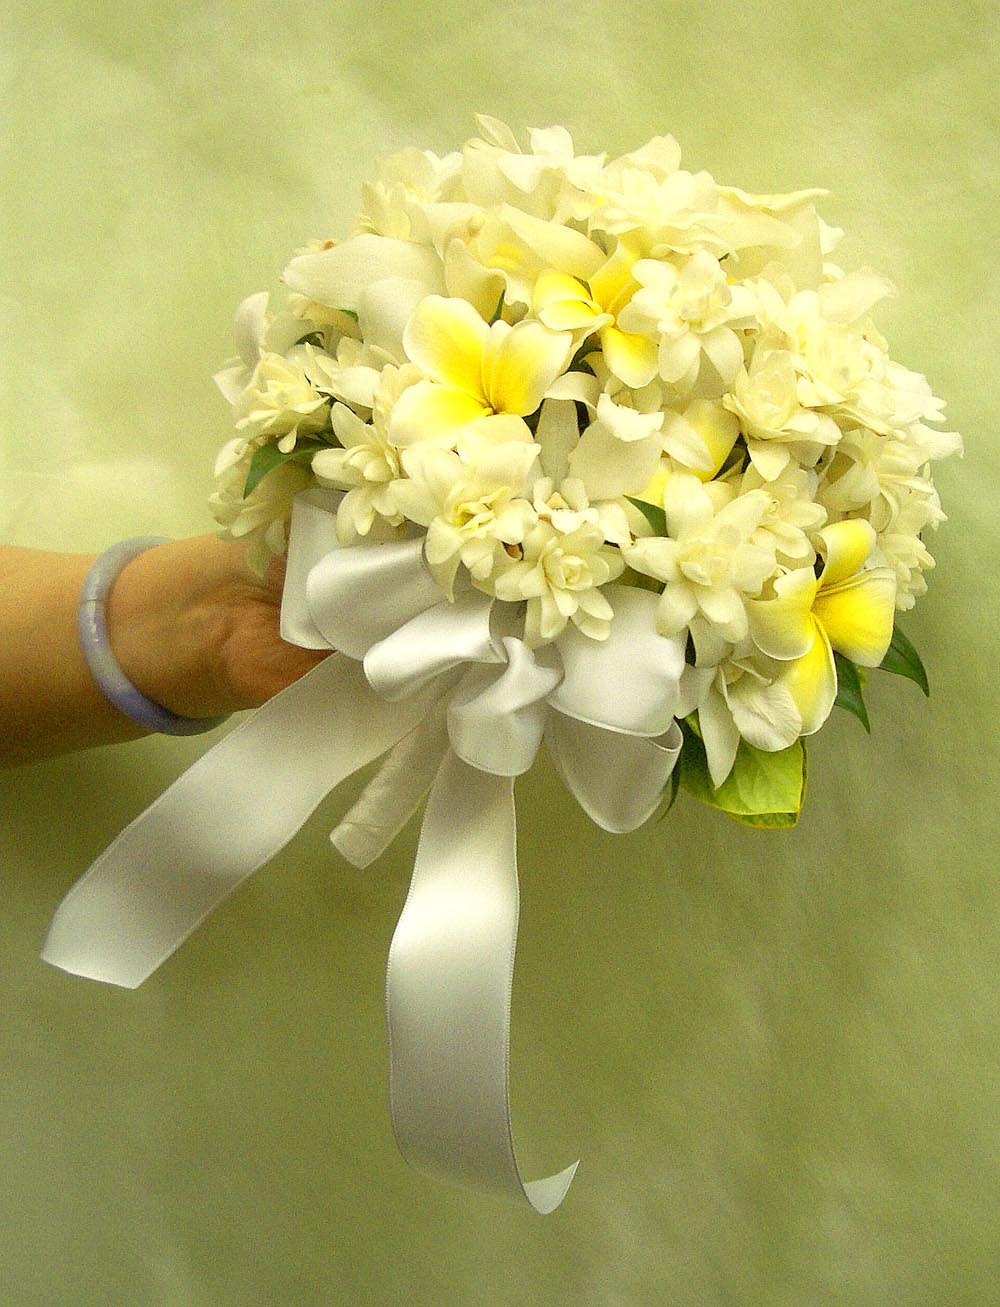 Wedding flowers a special touch florists serving lahaina and west a maui dream bouquet 155 tuberose orchid plumeria is available mid aug thru oct izmirmasajfo